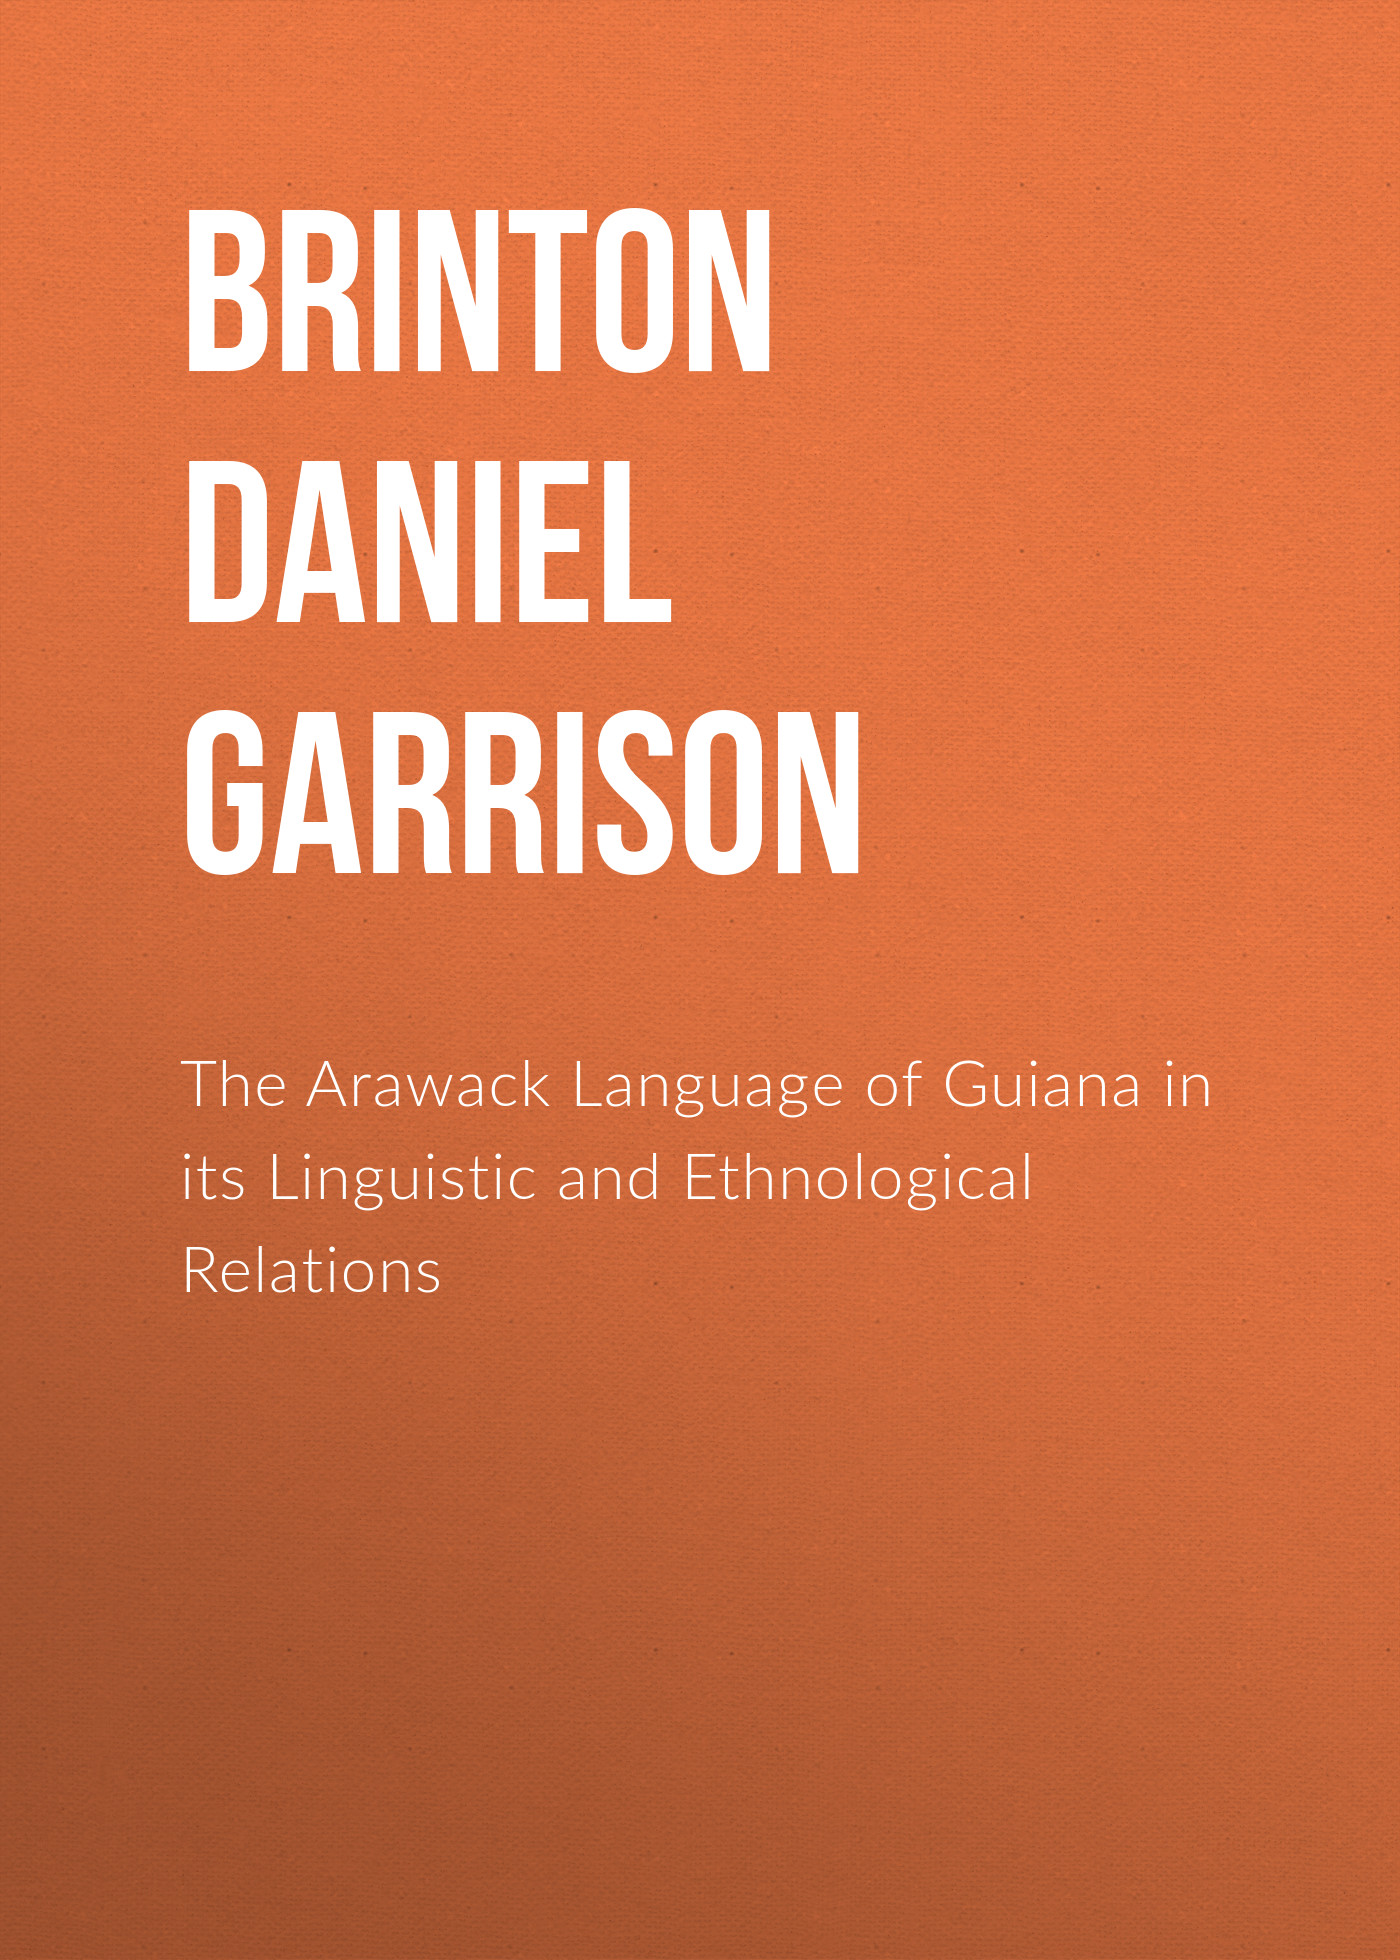 Brinton Daniel Garrison The Arawack Language of Guiana in its Linguistic and Ethnological Relations цены